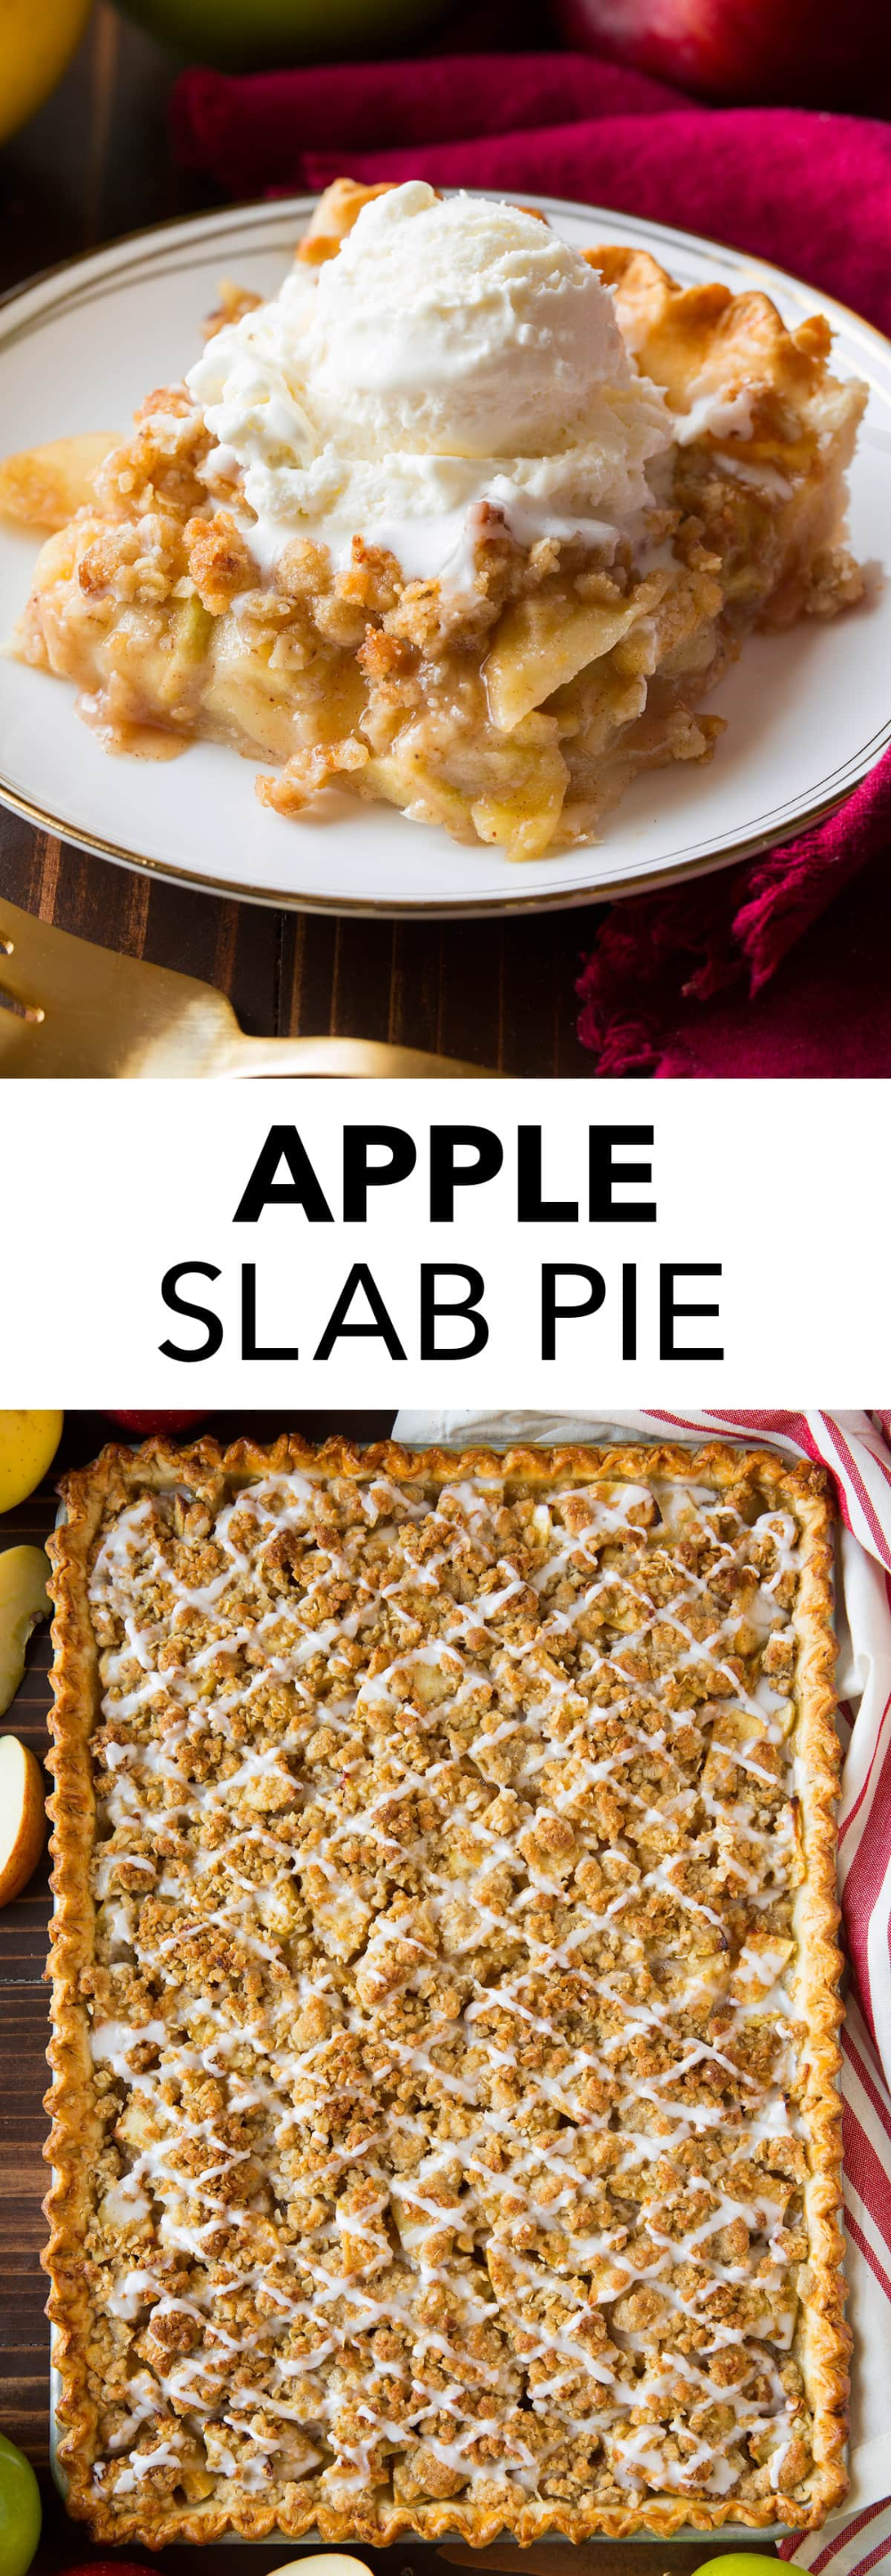 Apple Slab Pie (with Crumb Topping) - Cooking Classy -   18 thanksgiving desserts for a crowd ideas